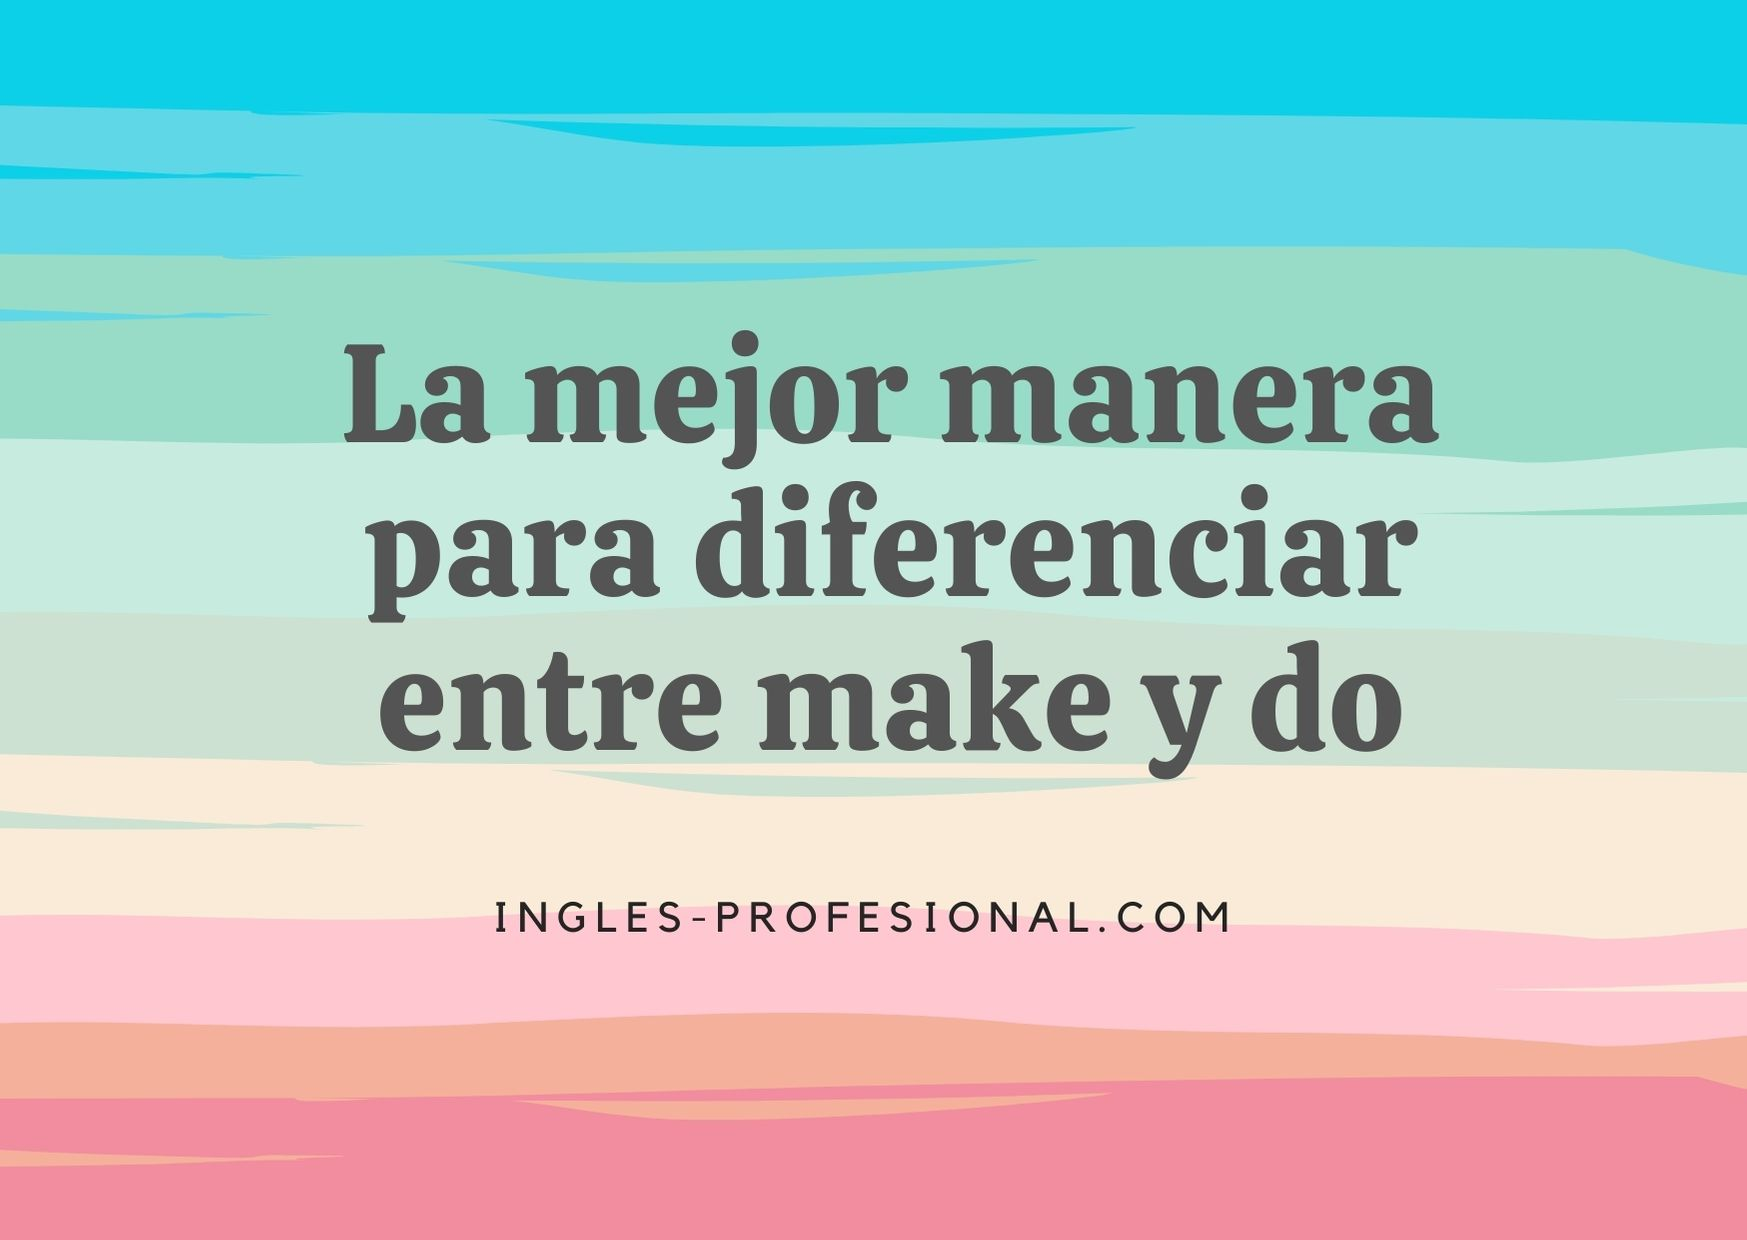 diferenciar entre make y do